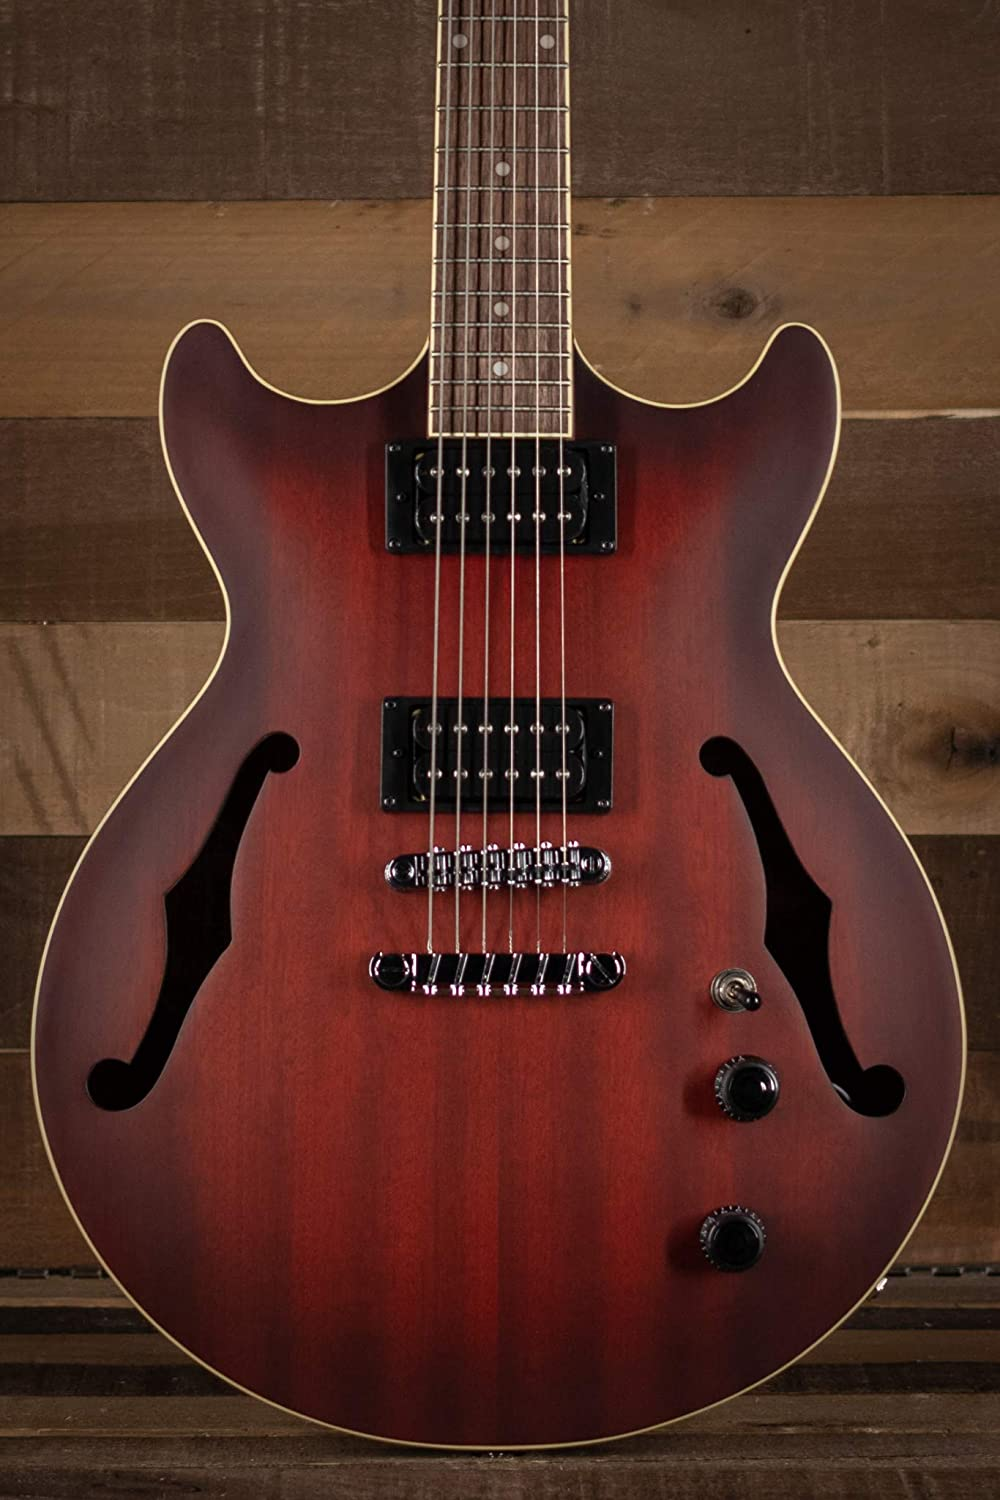 Ibanez Max 73% OFF Artcore 6 String Spring new work one after another Guitar Right Semi-Hollow-Body Electric